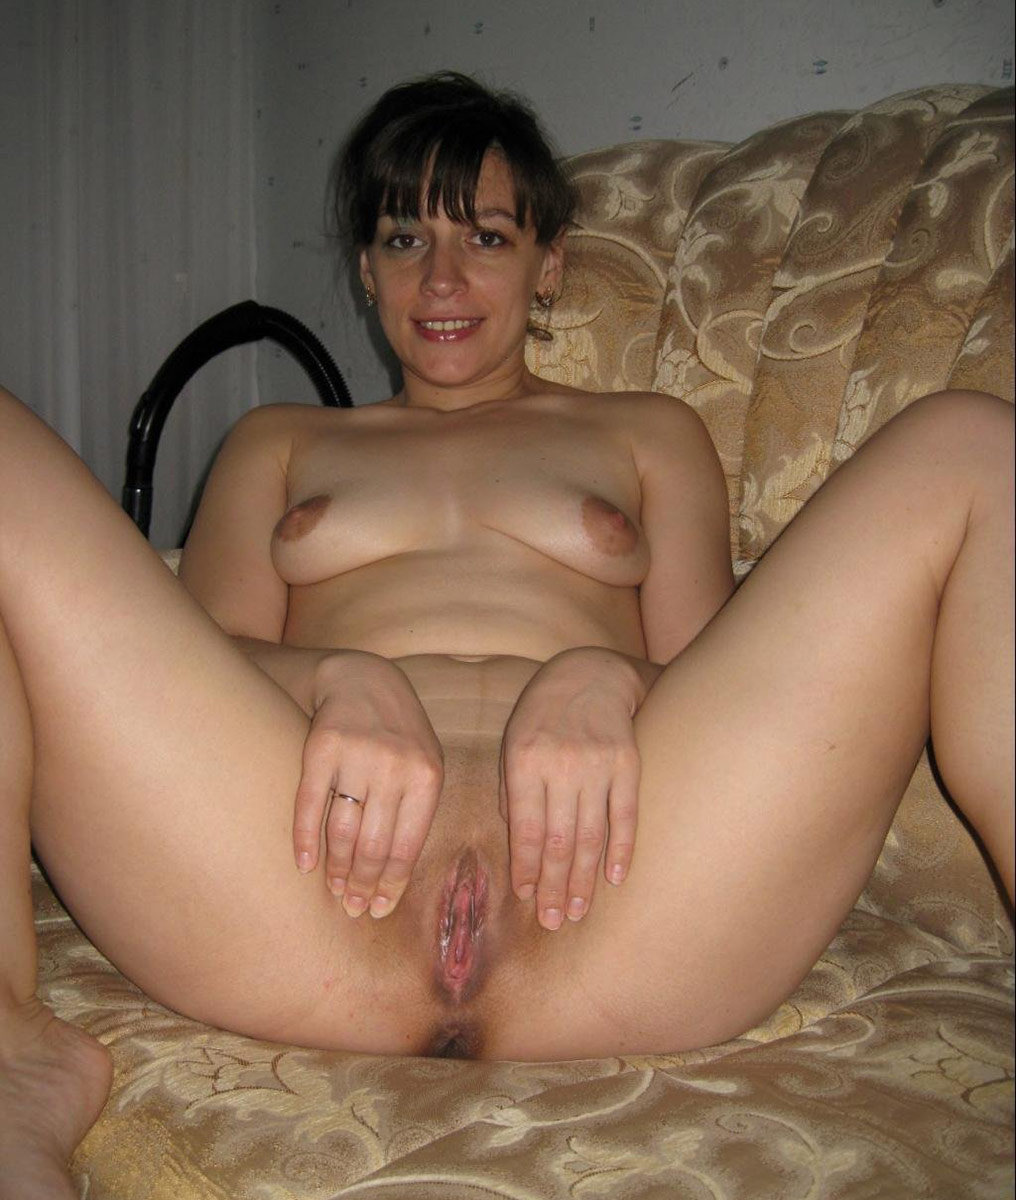 Agree, the Amateur milf shaved nude wives really. happens